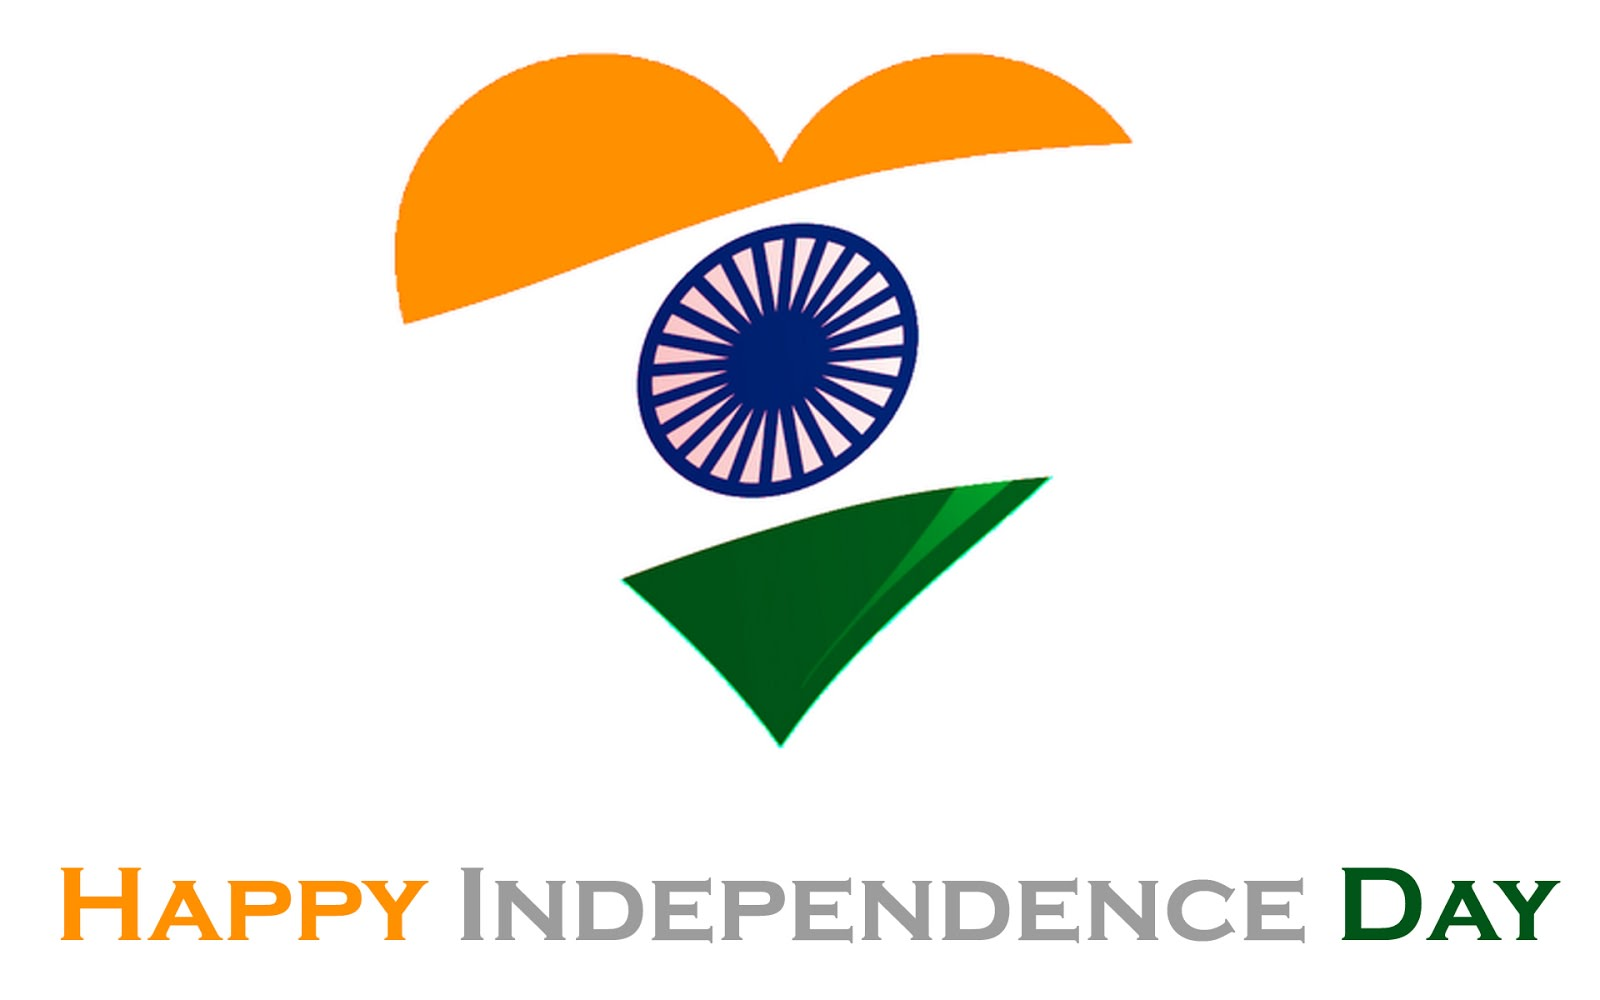 1600x1000 Happy Independence Day Heart Shape Indian Flag Wallpaper - Golfian.com